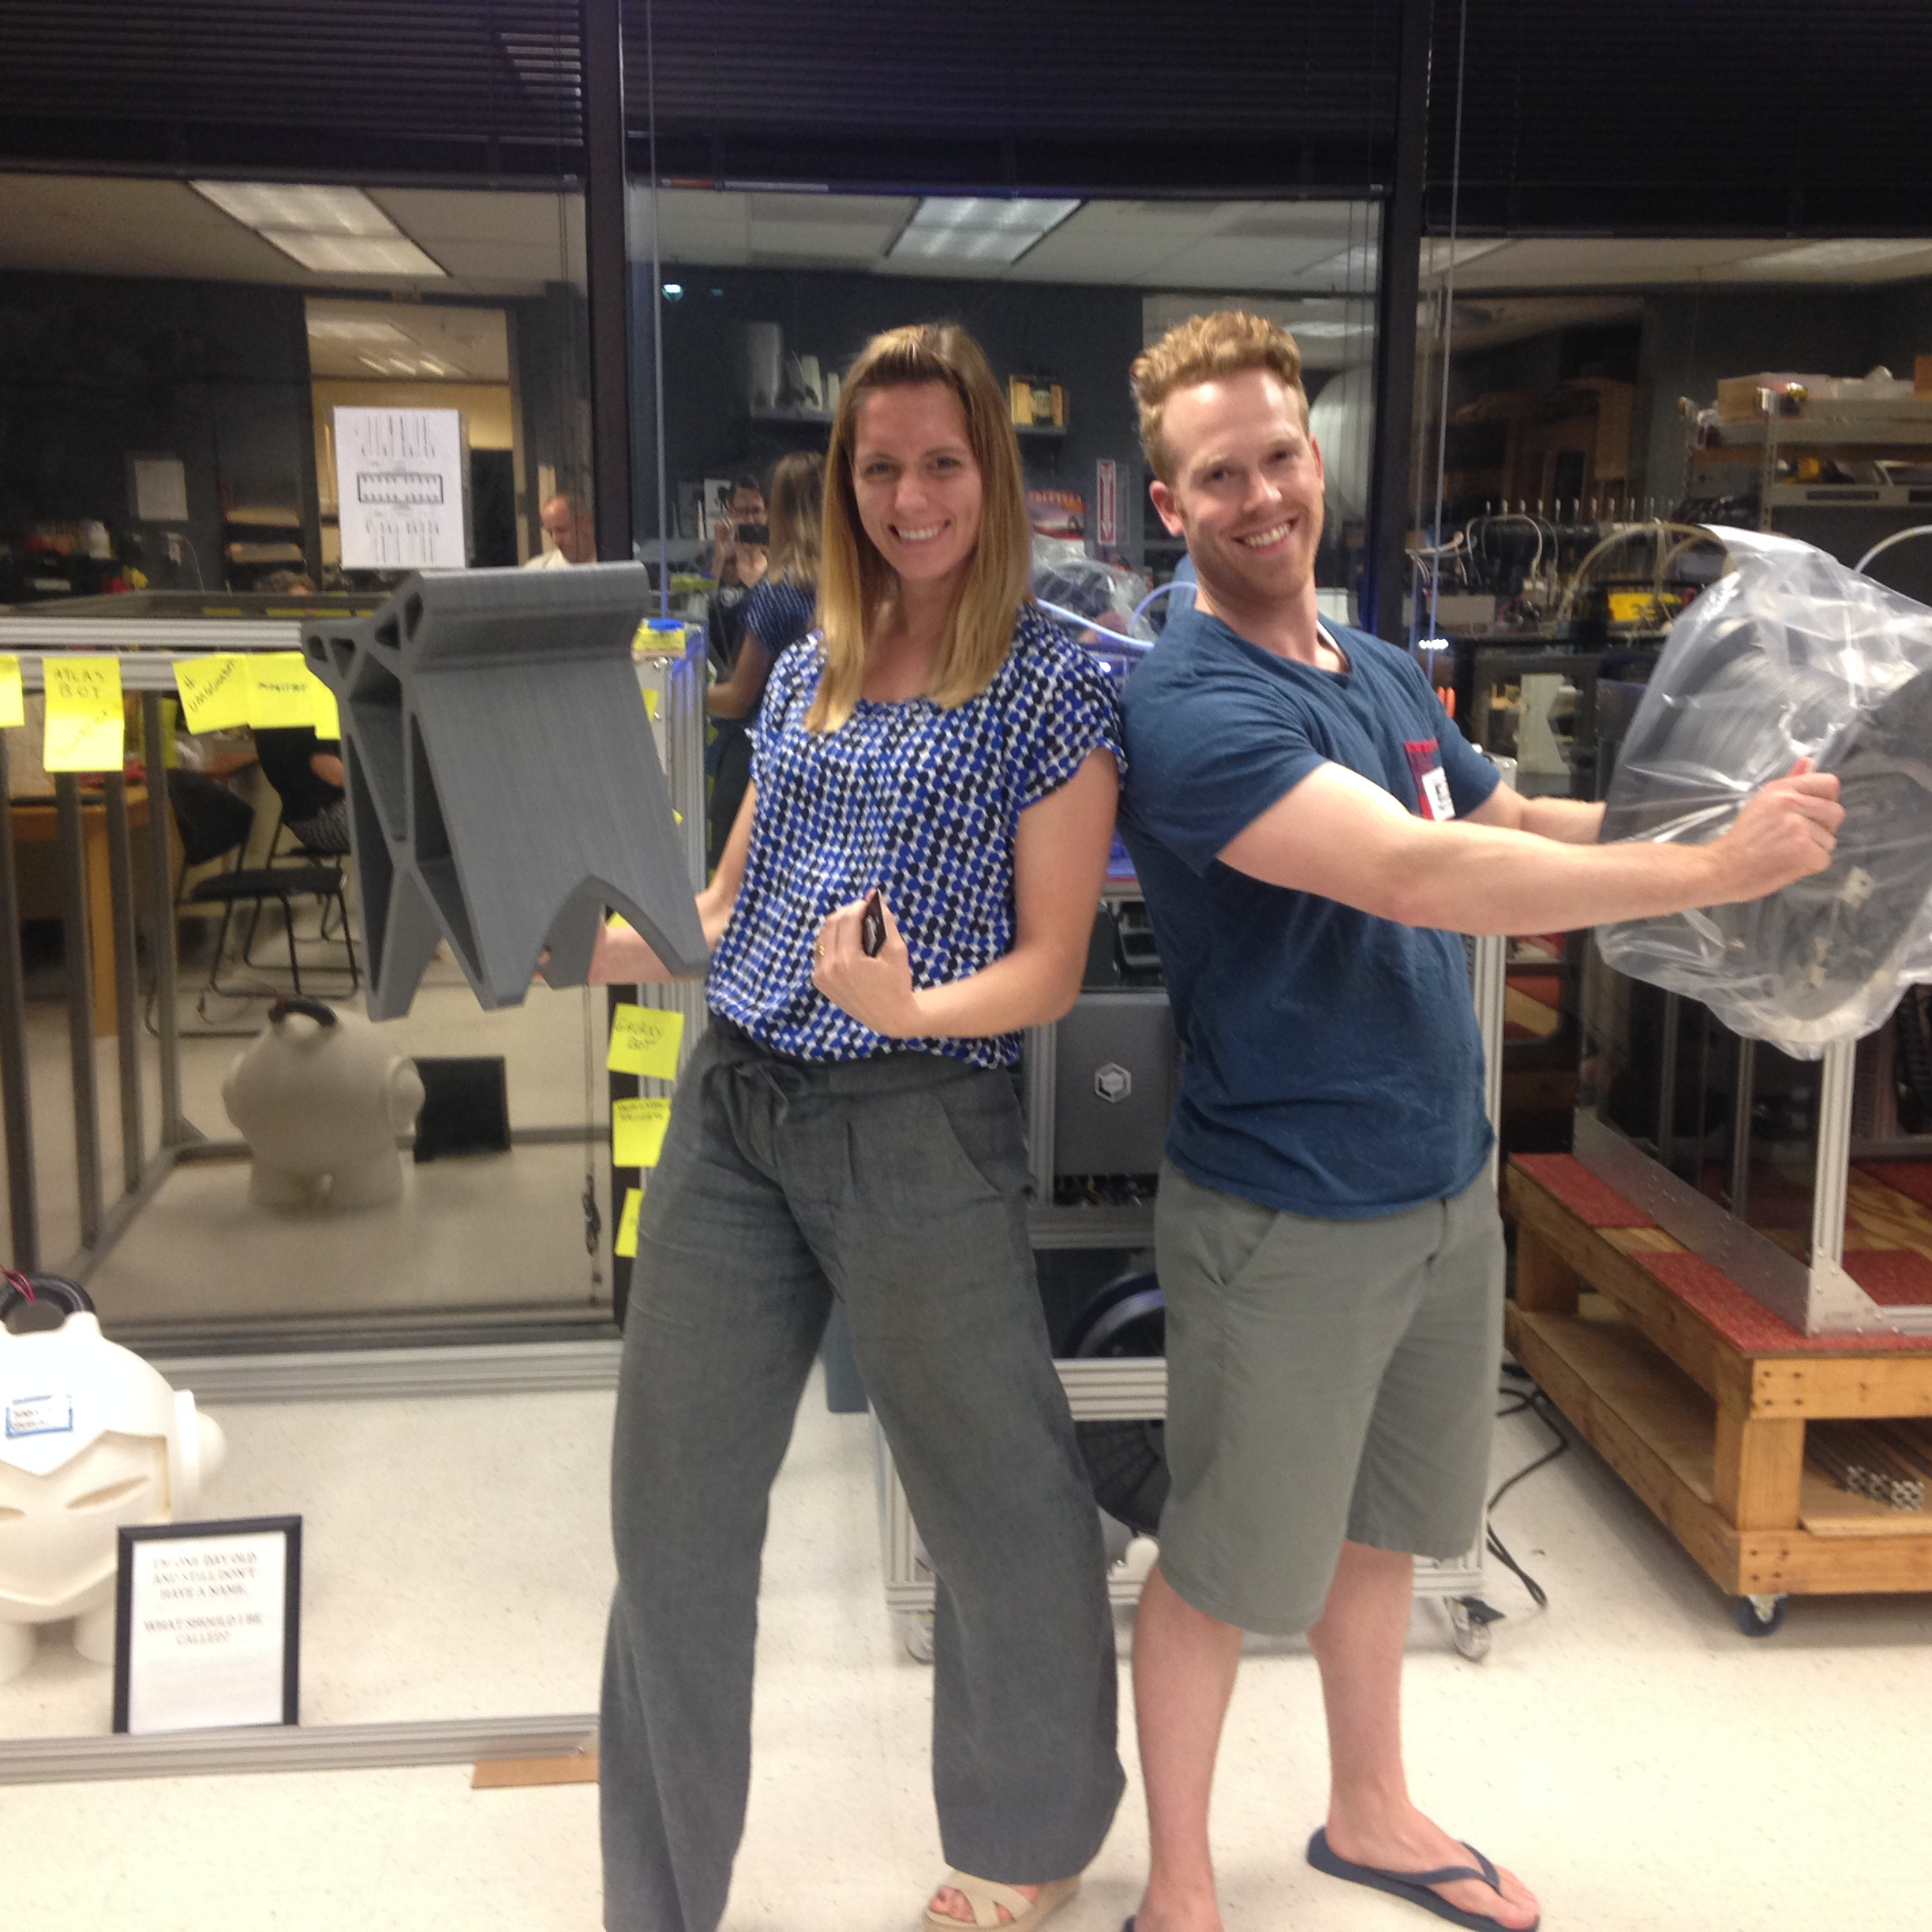 Houston customers 3D Kinkos pose w/Gigabot, Terabot & a 15lb filament spool they won for sharing their 3D printed stool